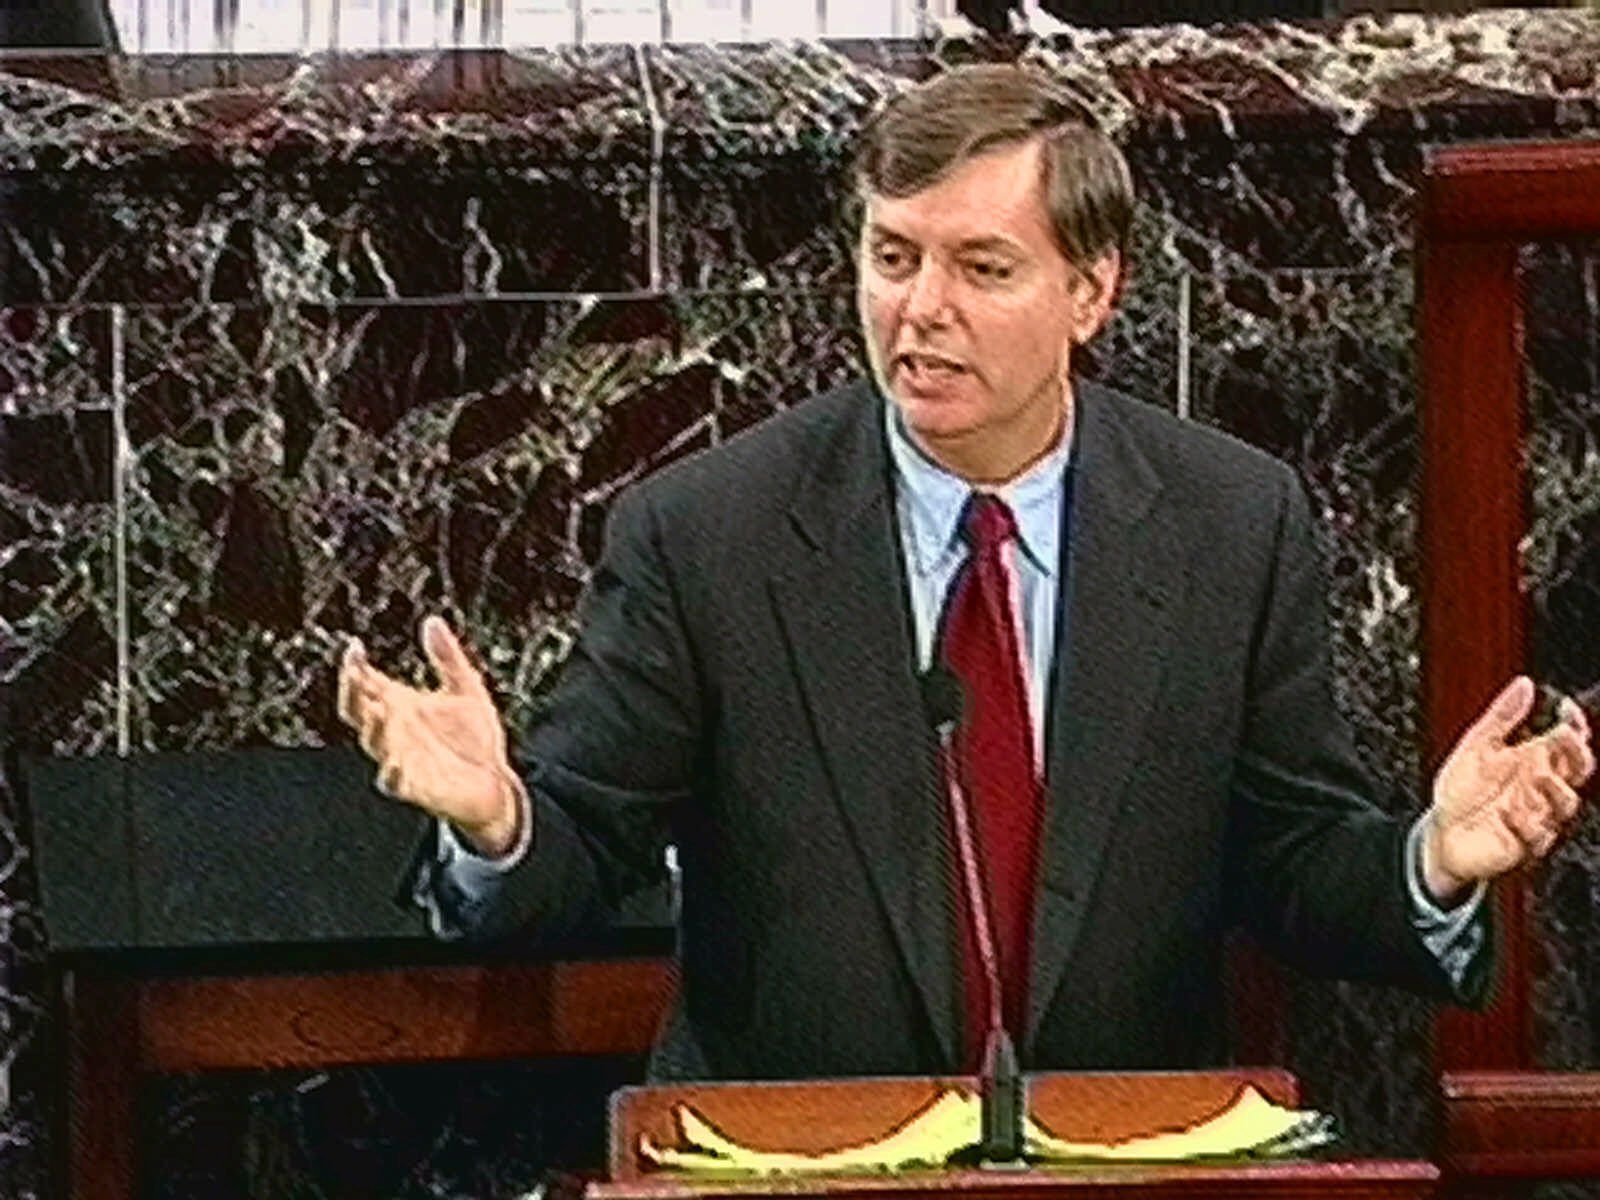 House Manager Lindsey Graham, R-S.C. gestures during the Senate impeachment trial of President Clinton Saturday, Feb. 6, 1999. Graham was summarizing the differences between the House Managers presentation of witnesses and that of the defense.  (AP Photo/APTN)